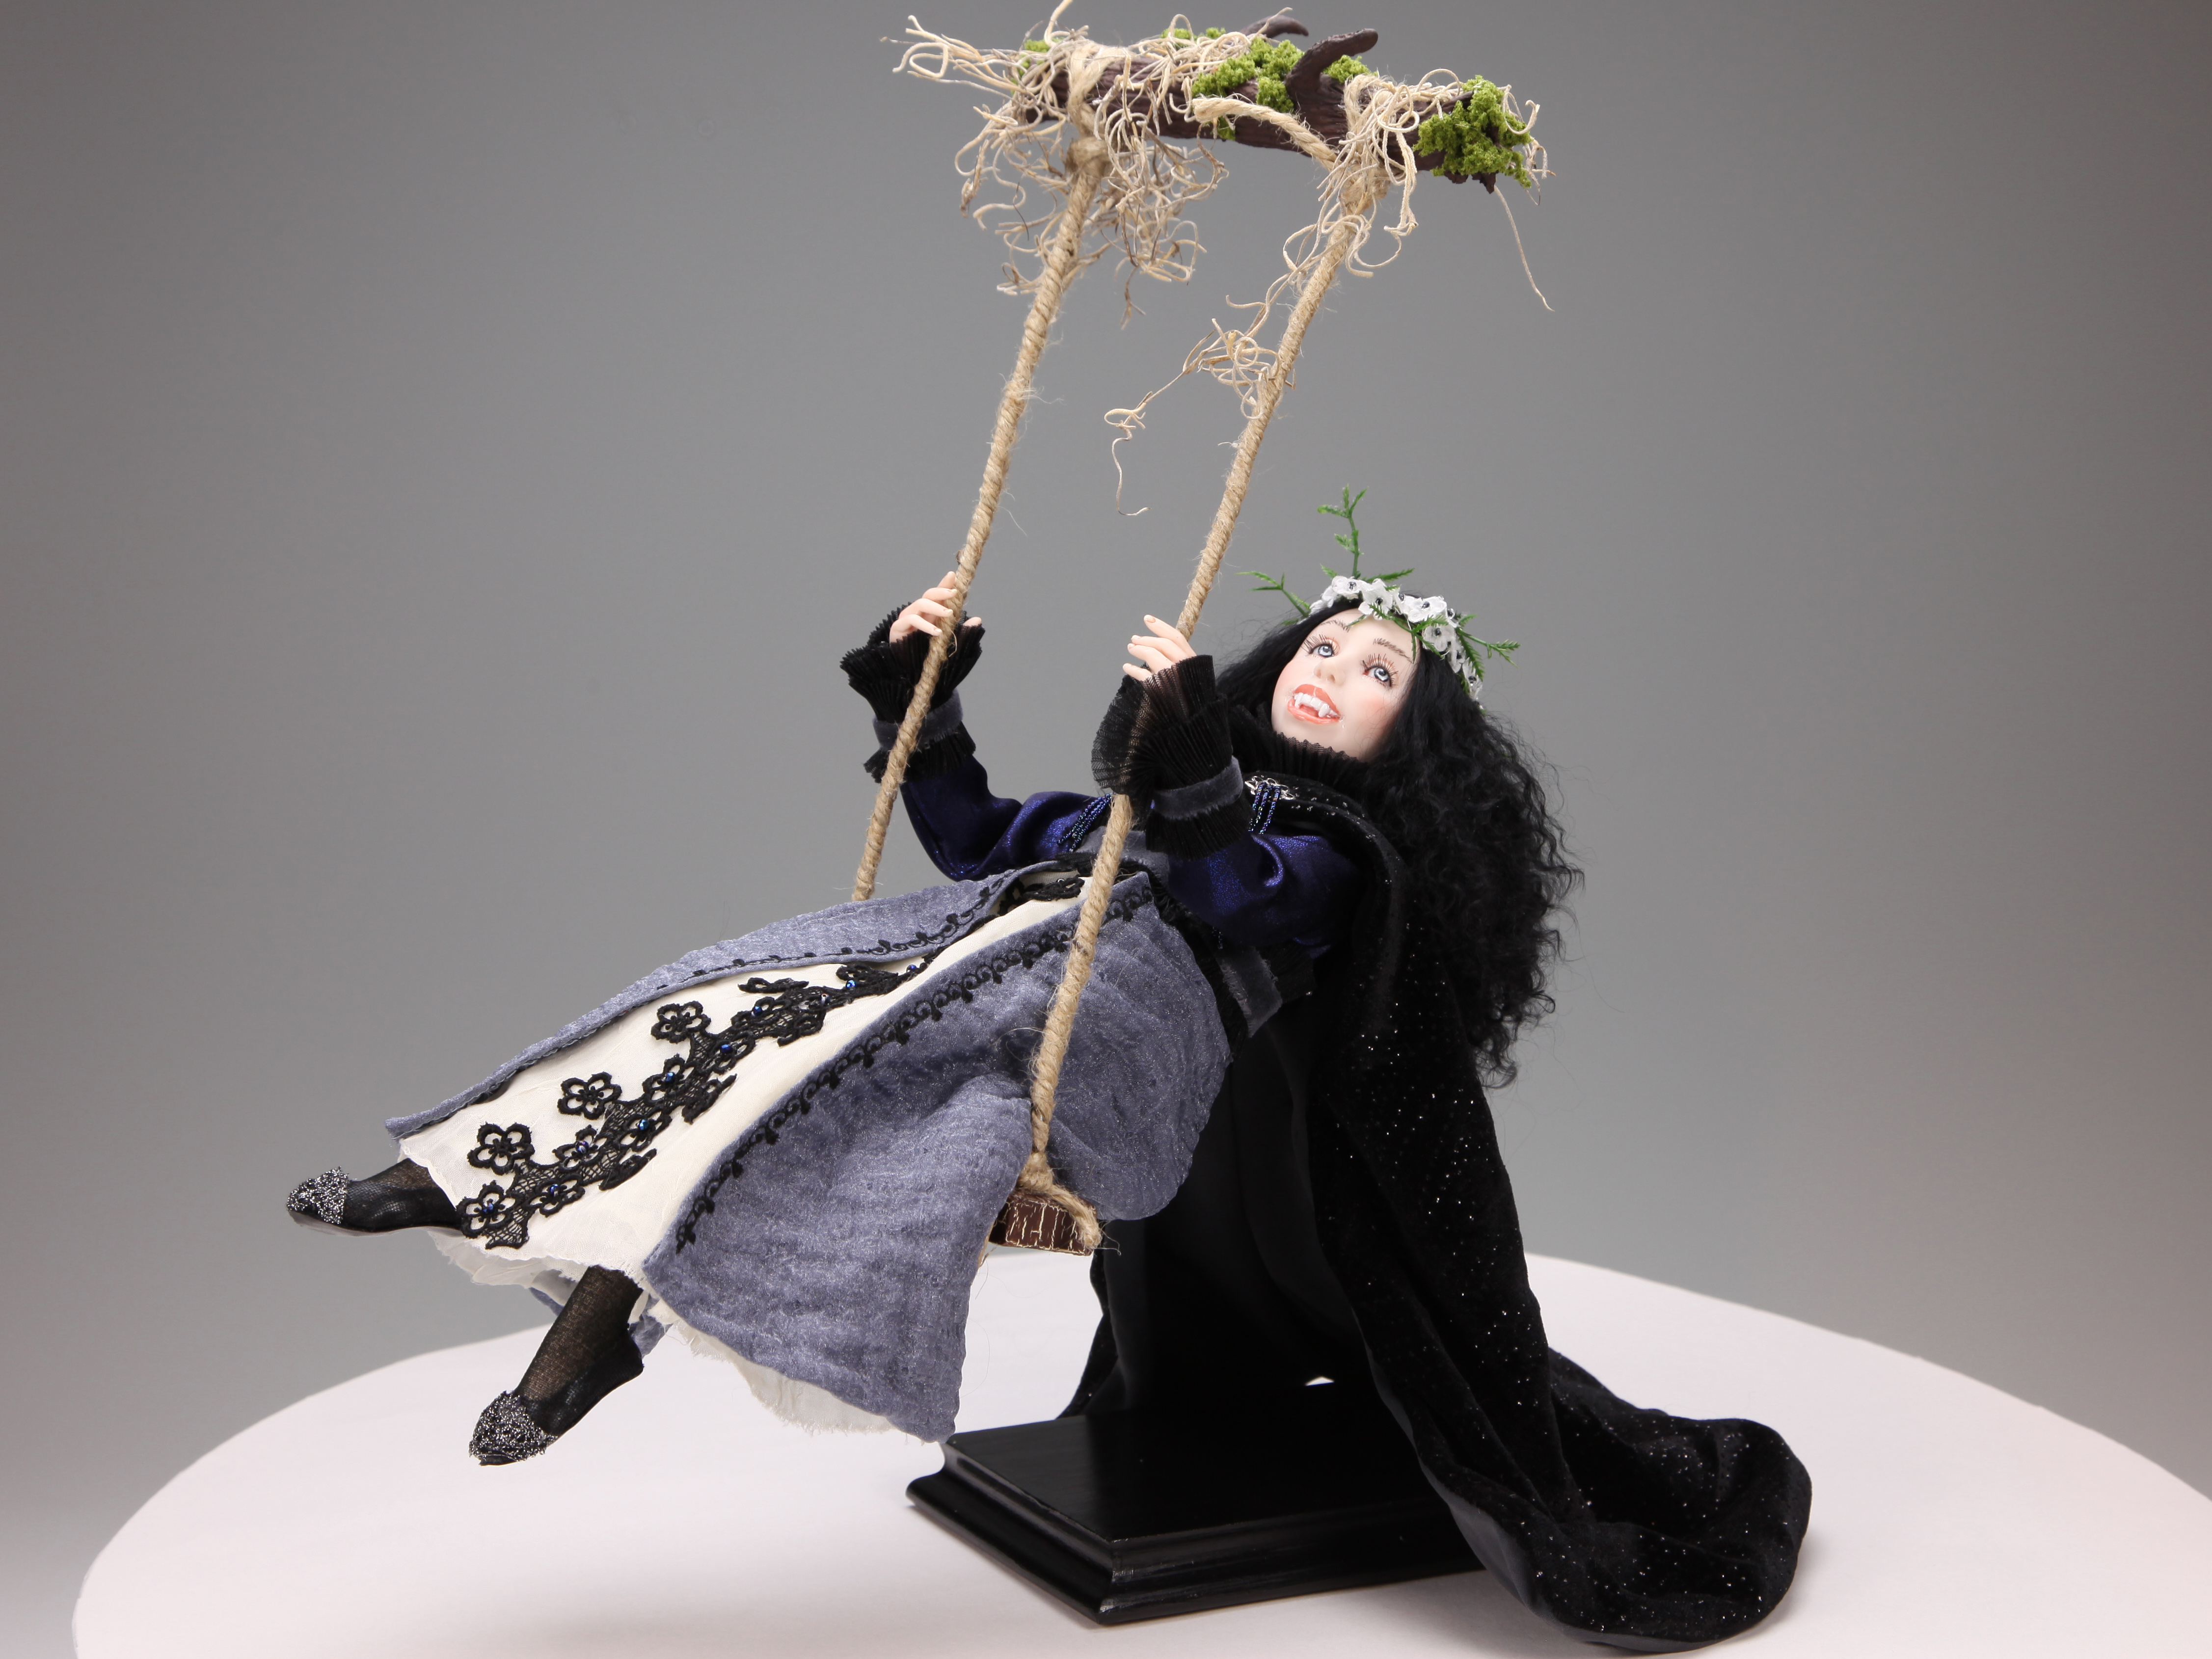 Swings Under The Moon - One-of-a-kind Art Doll by Tanya Abaimova